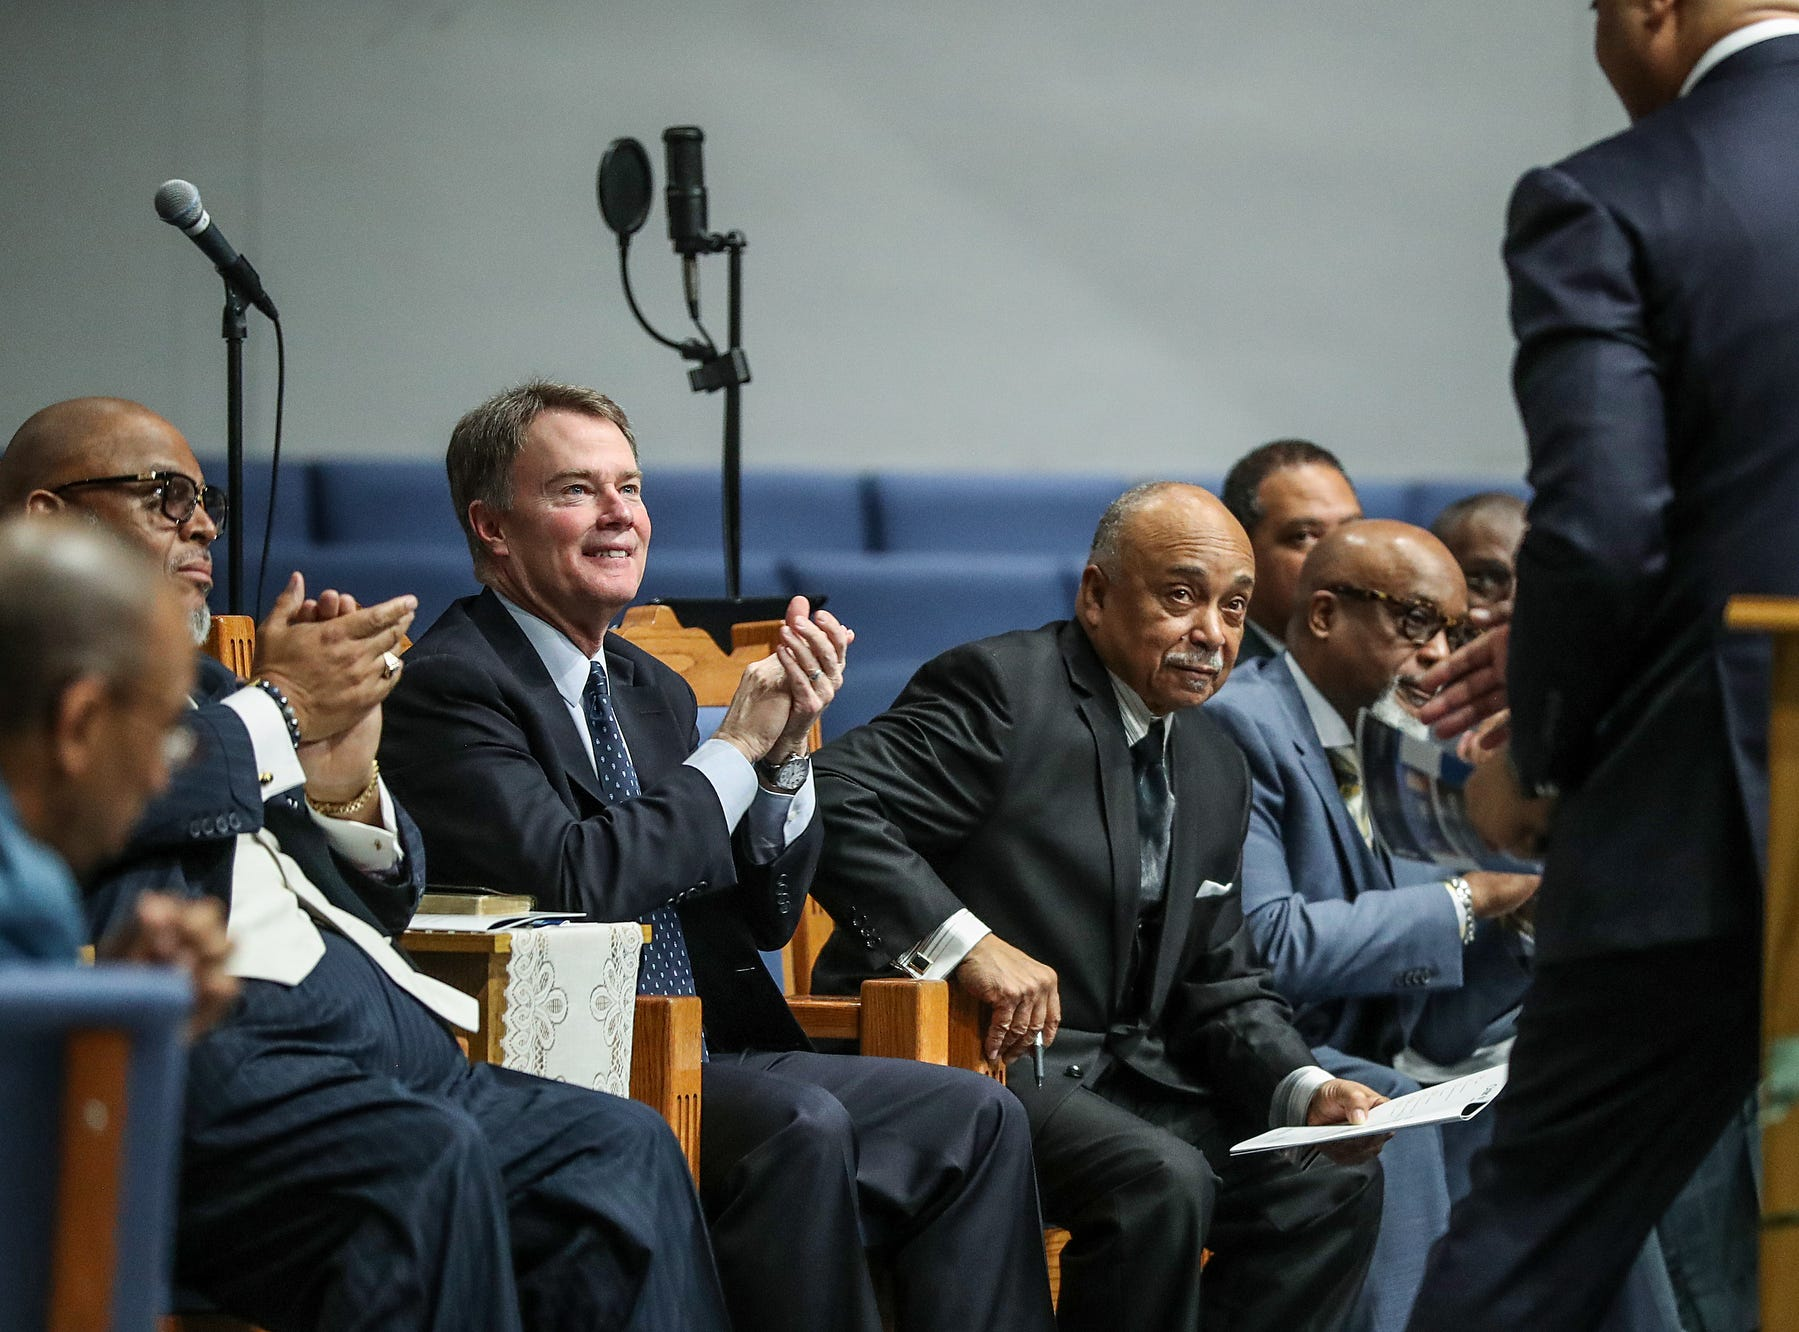 Mayor Joe Hogsett and clergymen look on after U.S. Rep. Andre Carson delivered remarks on the state of the nation during a service celebrating the anniversary of the Emancipation Proclamation and honoring local leaders, at Olivet Missionary Baptist Church in Indianapolis, Tuesday, Jan. 1, 2019.